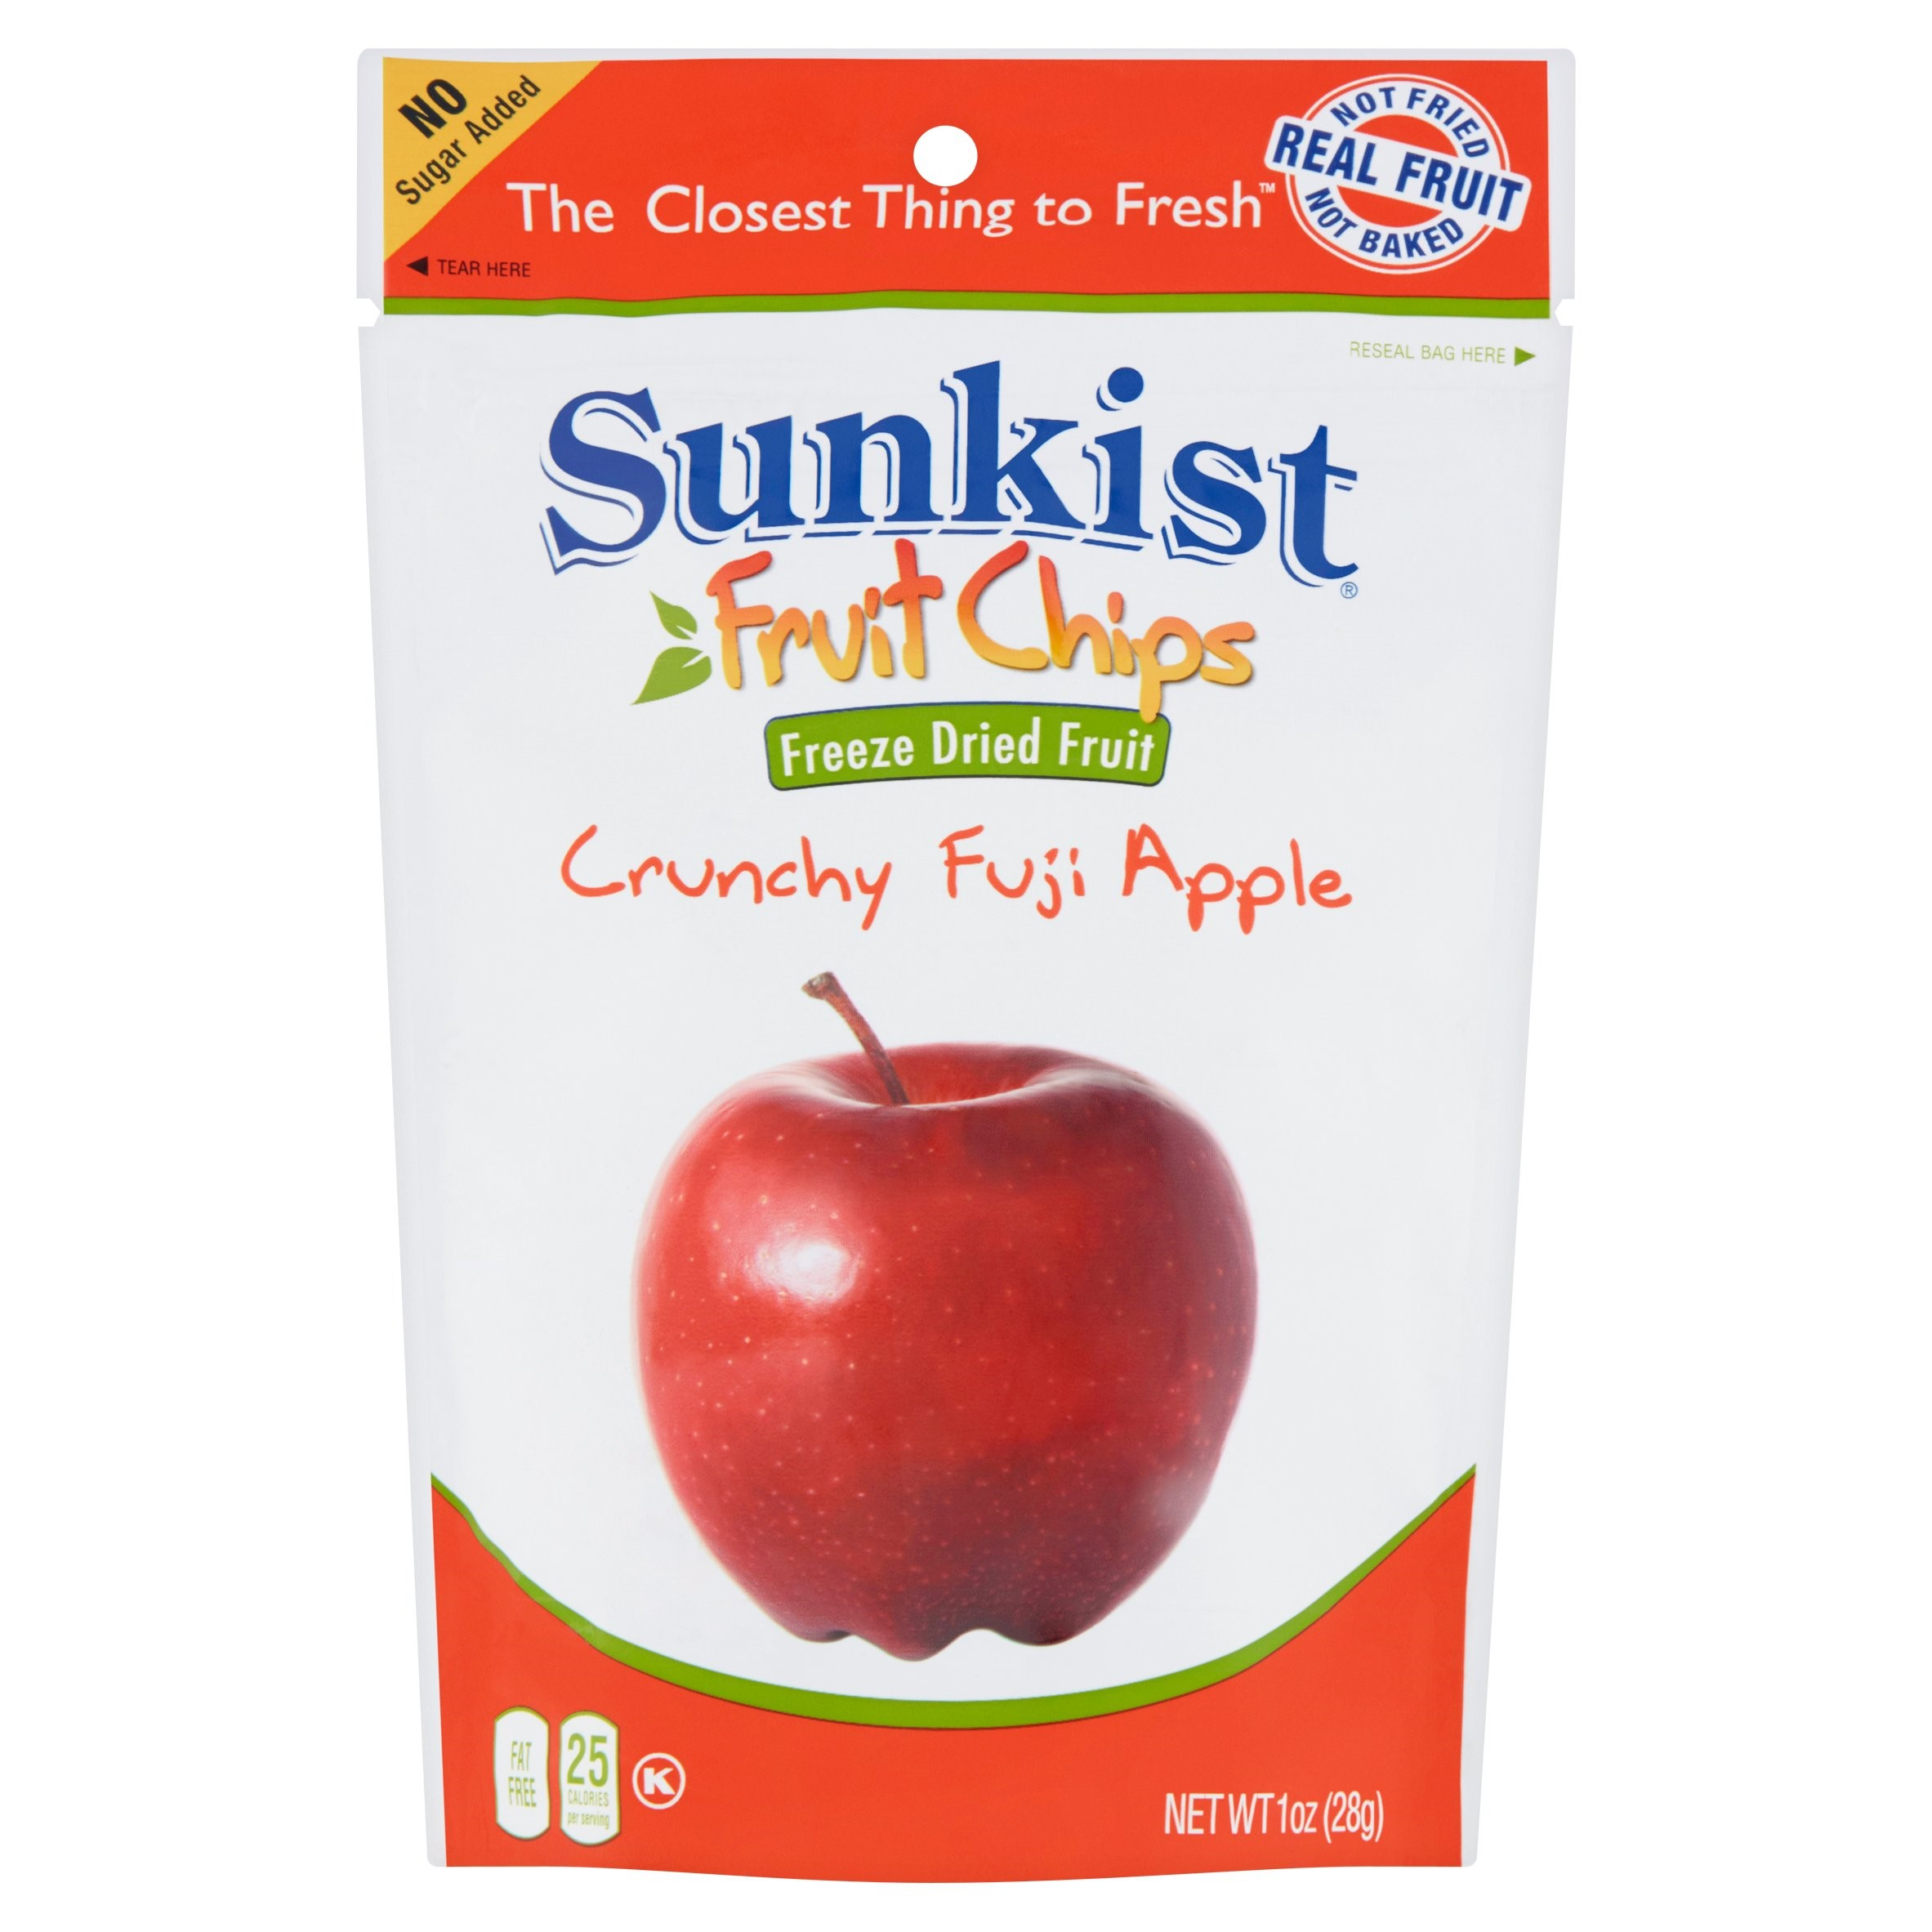 Sunkist Fruit Chips, Crunchy Fuji Apple, 1 Ounce